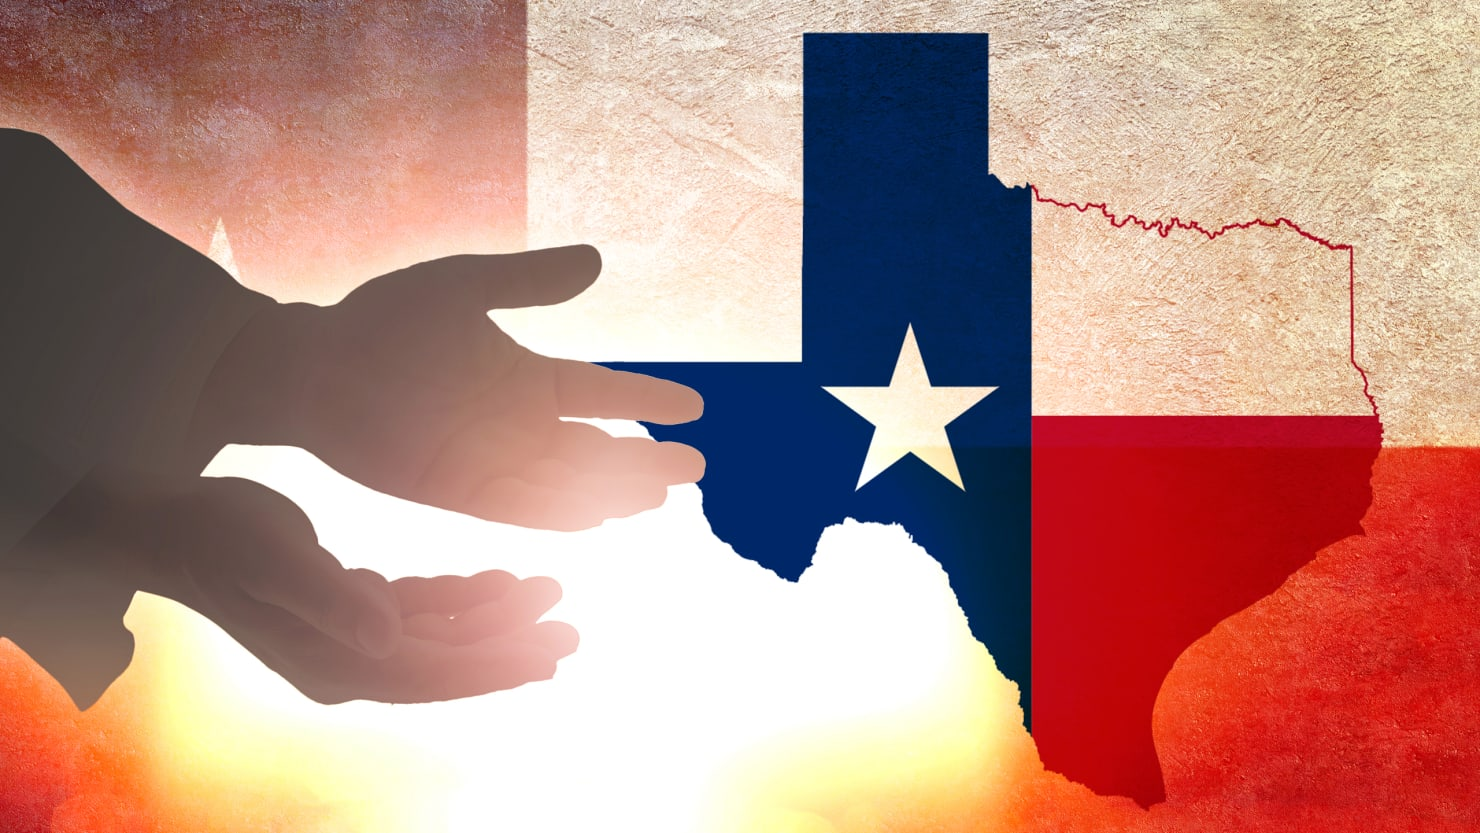 In God Save Texas Lawrence Wright Explores The Love Hate